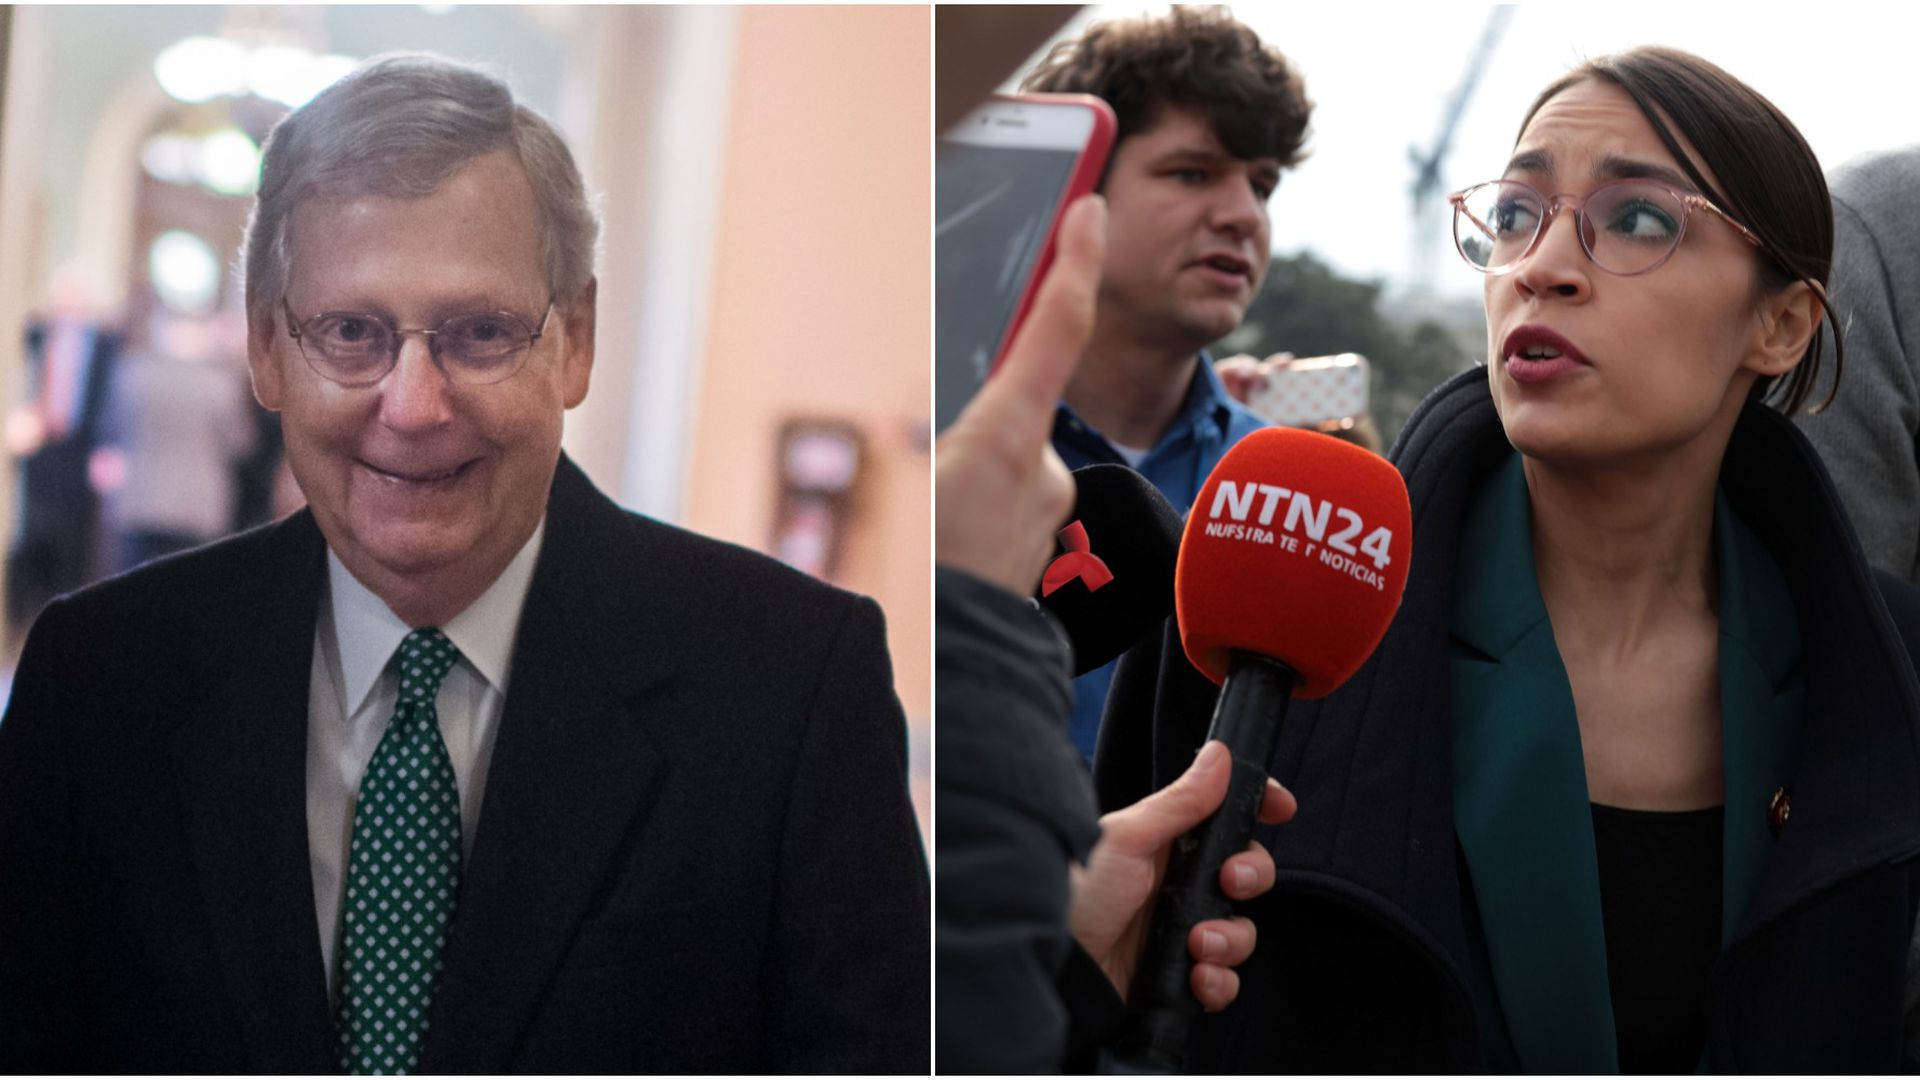 A smiling Mitch McConnell and Alexandria Ocasio-Cortez talking into a microphone